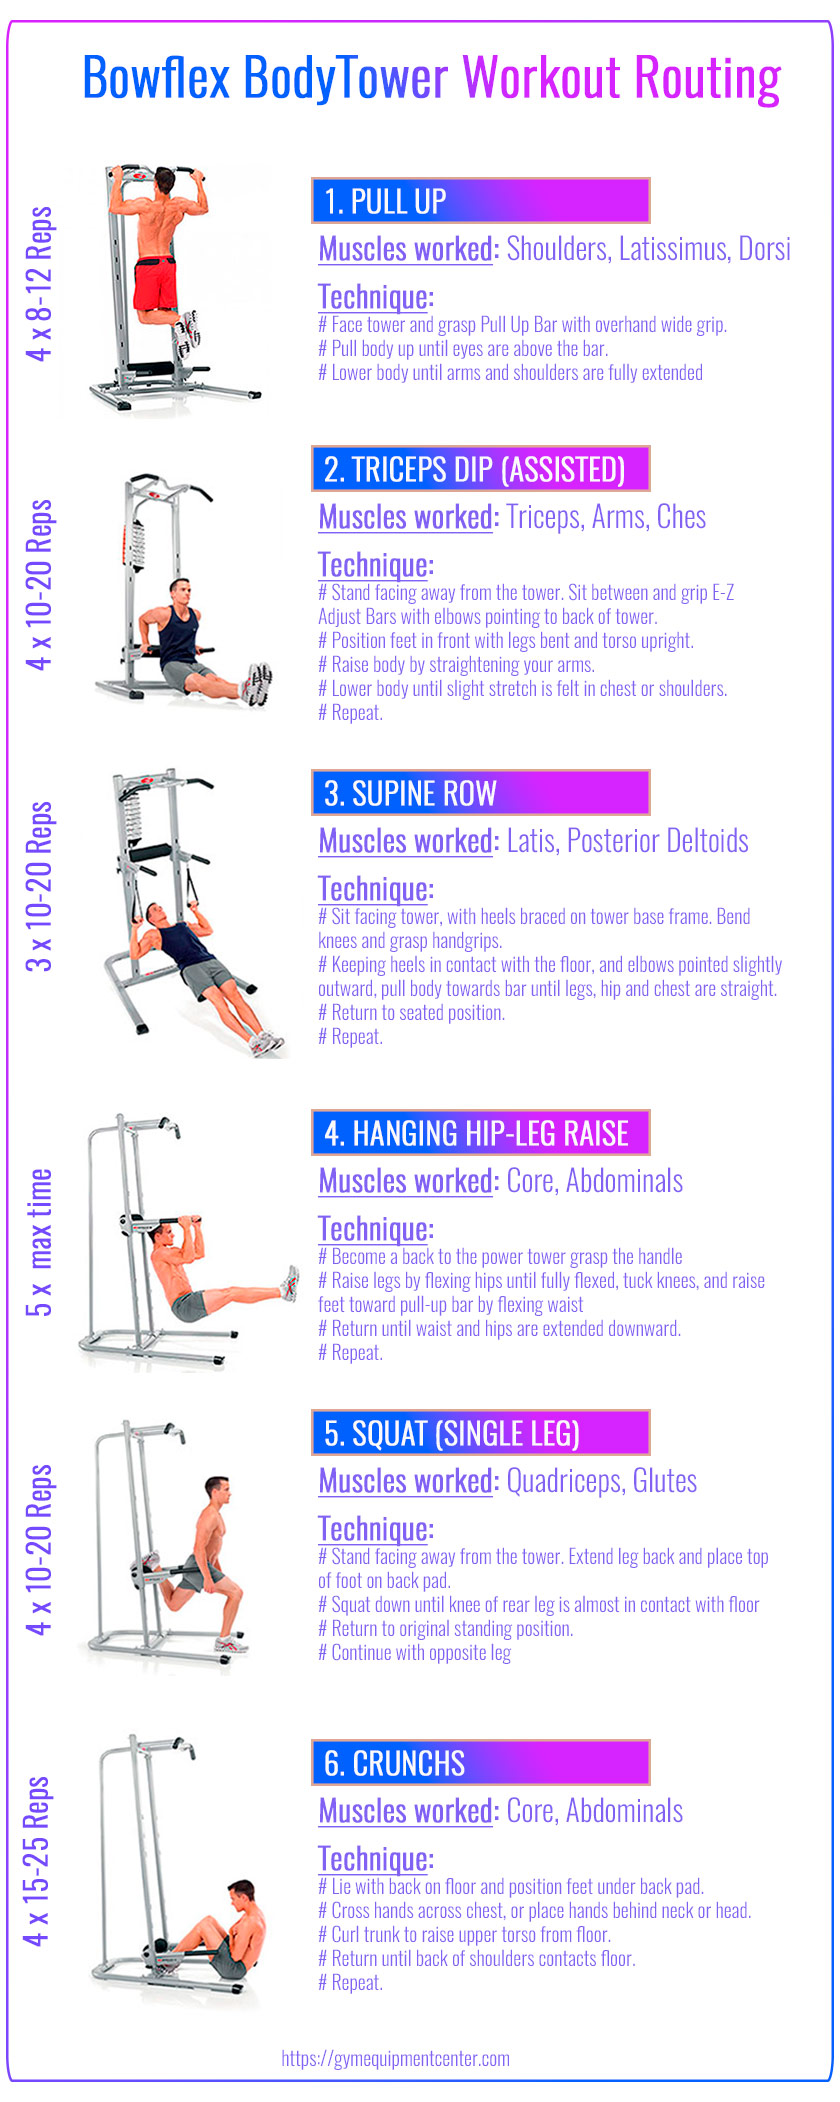 Bowflex BodyTower Review 2019 (PDF Manual, Workout Infographic)